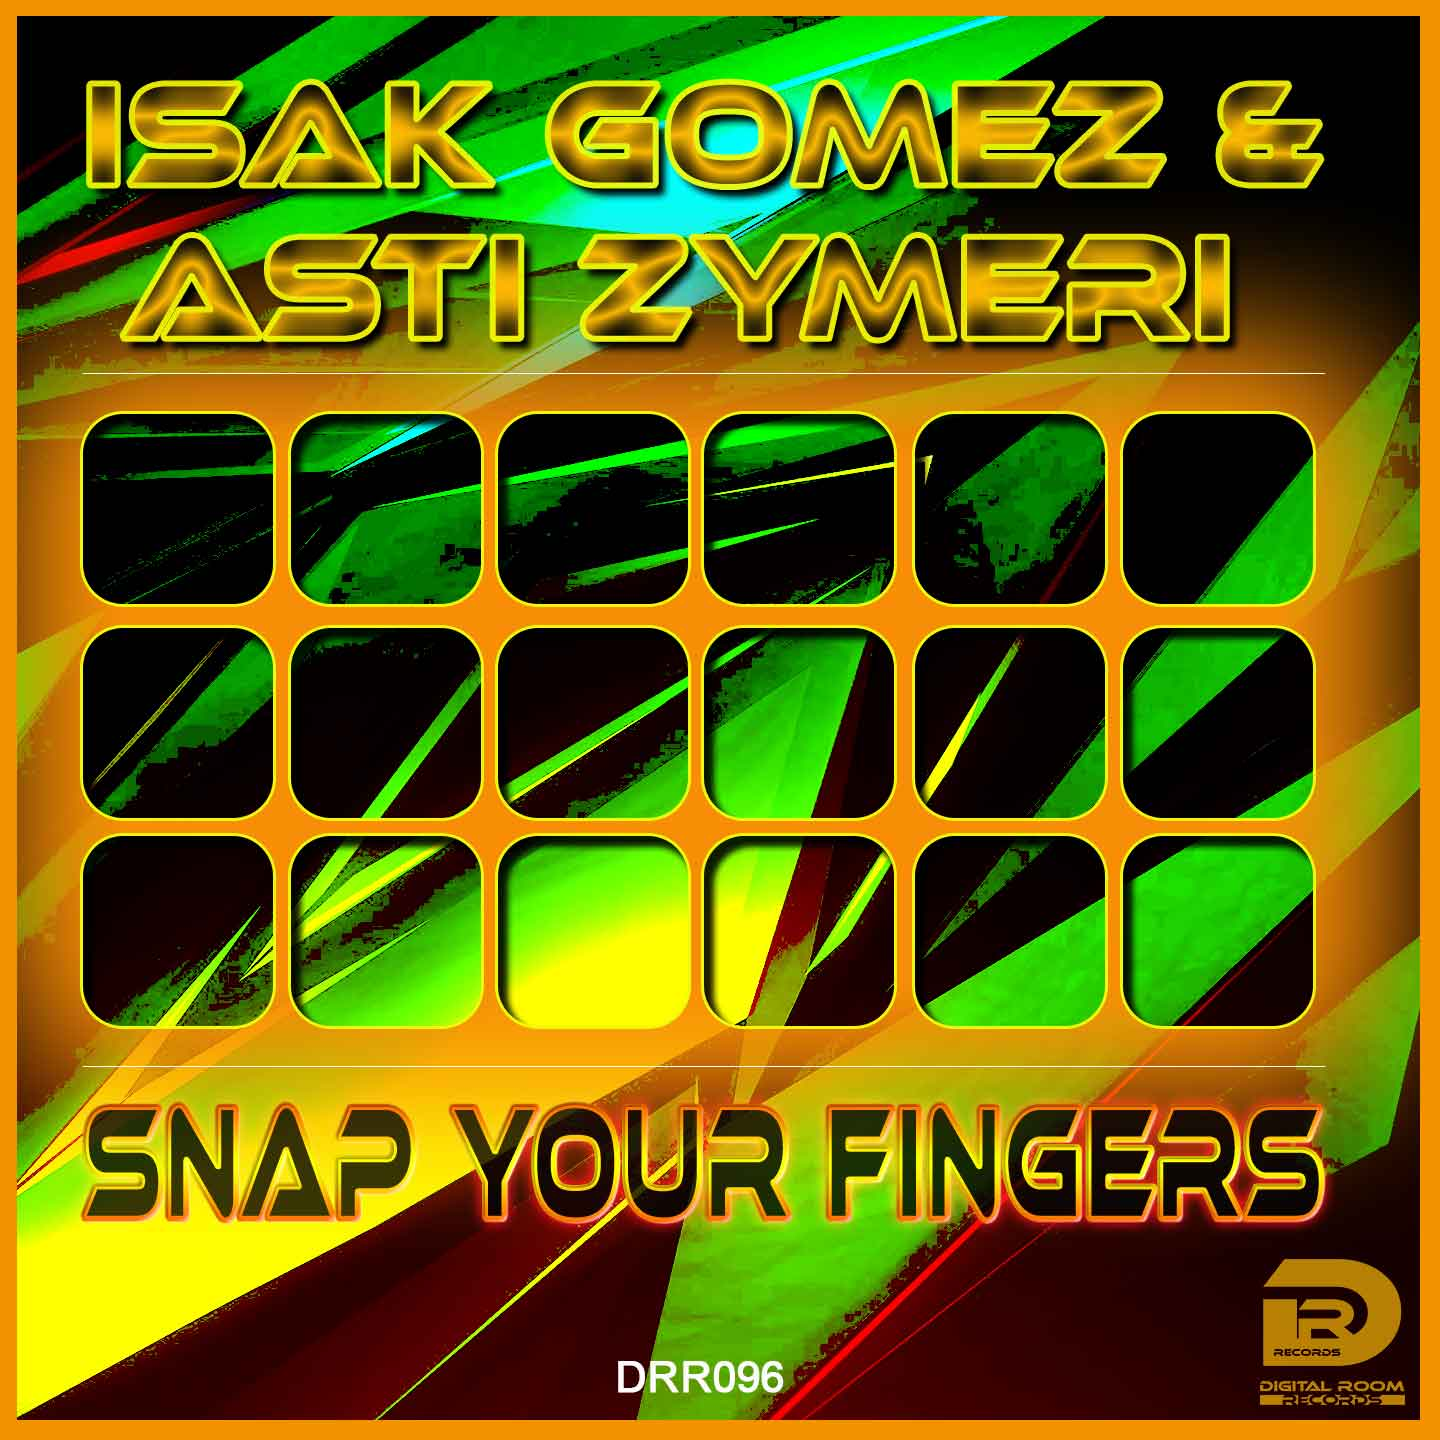 Isak Gomez & Asti Zymeri - Snap your Fingers (Original Mix)